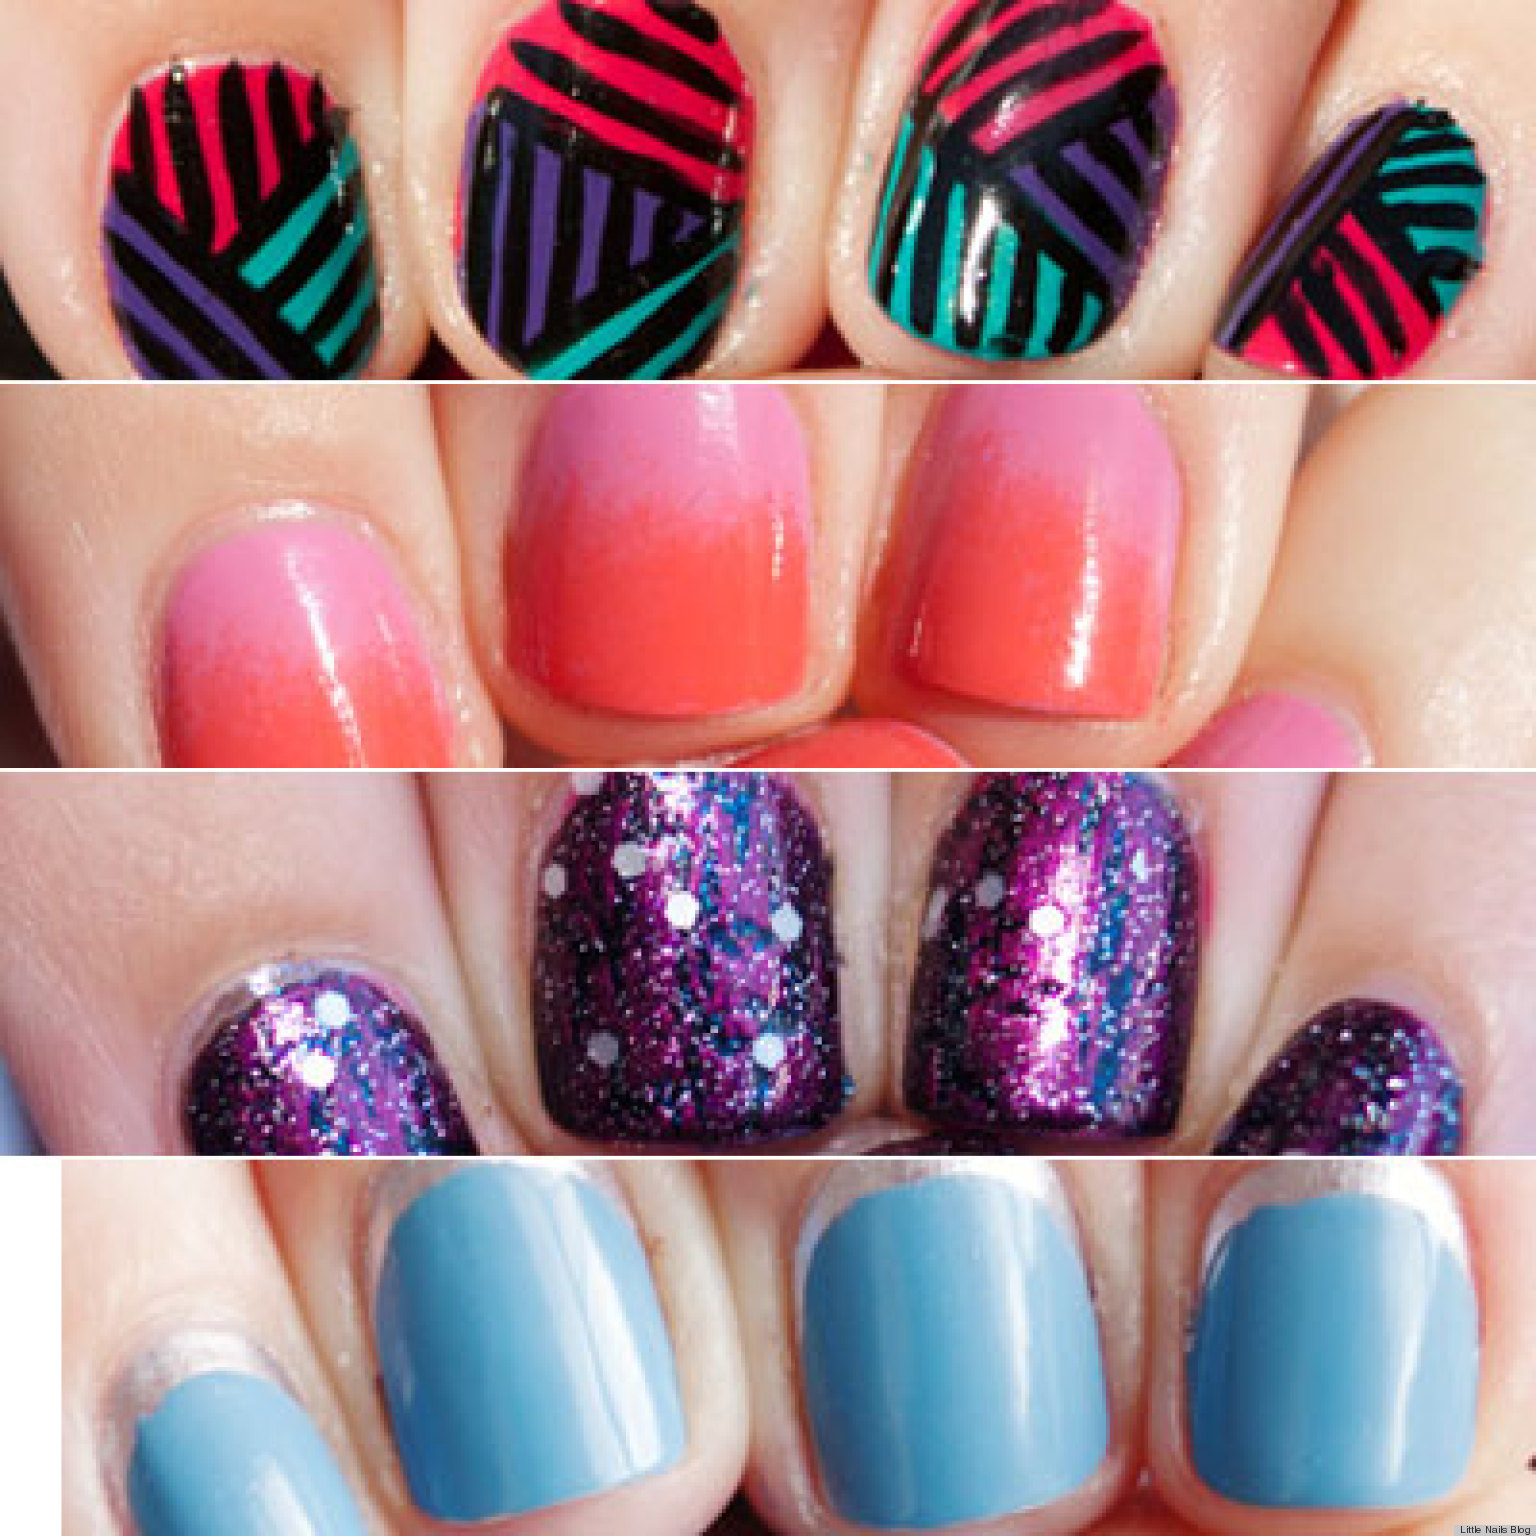 13 Nail Art Ideas For Teeny Tiny Fingertips (PHOTOS) | HuffPost